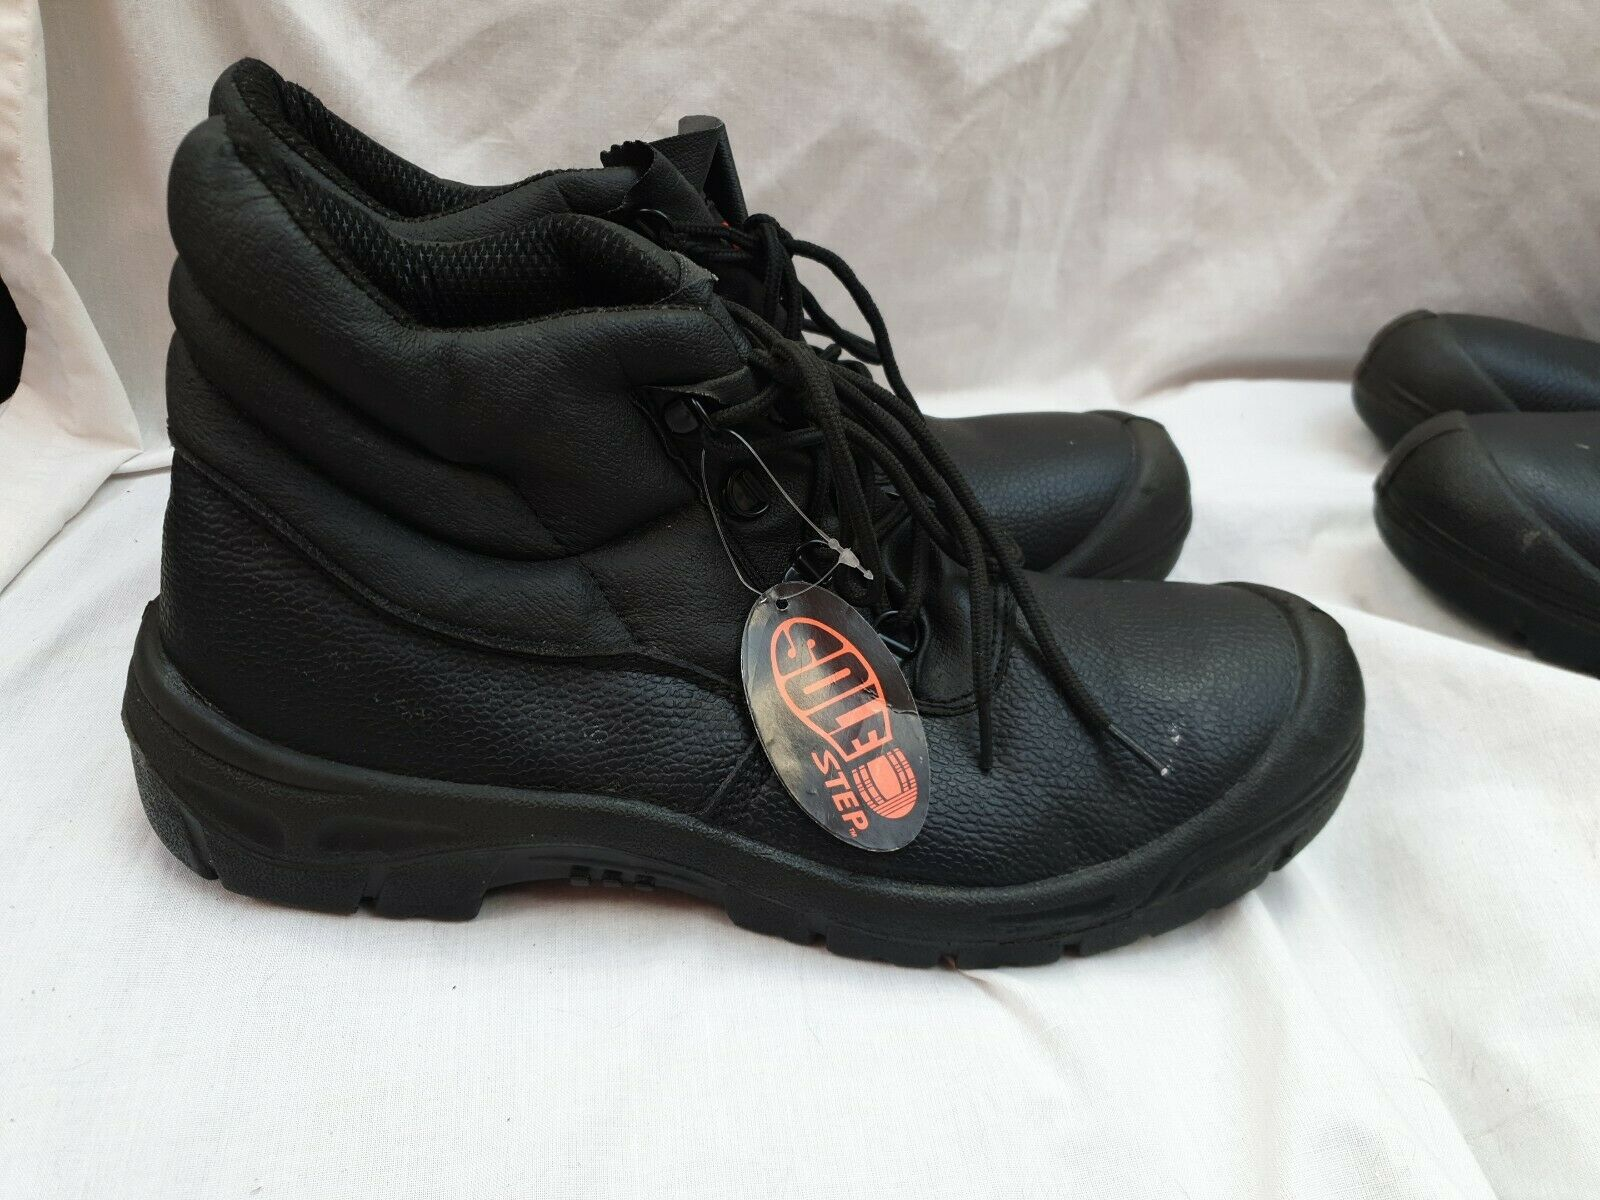 2 PAIRS MEN'S BLACK LEATHER WORK BOOTS SIZE UK 12, Steel Toe Caps Safety NEW